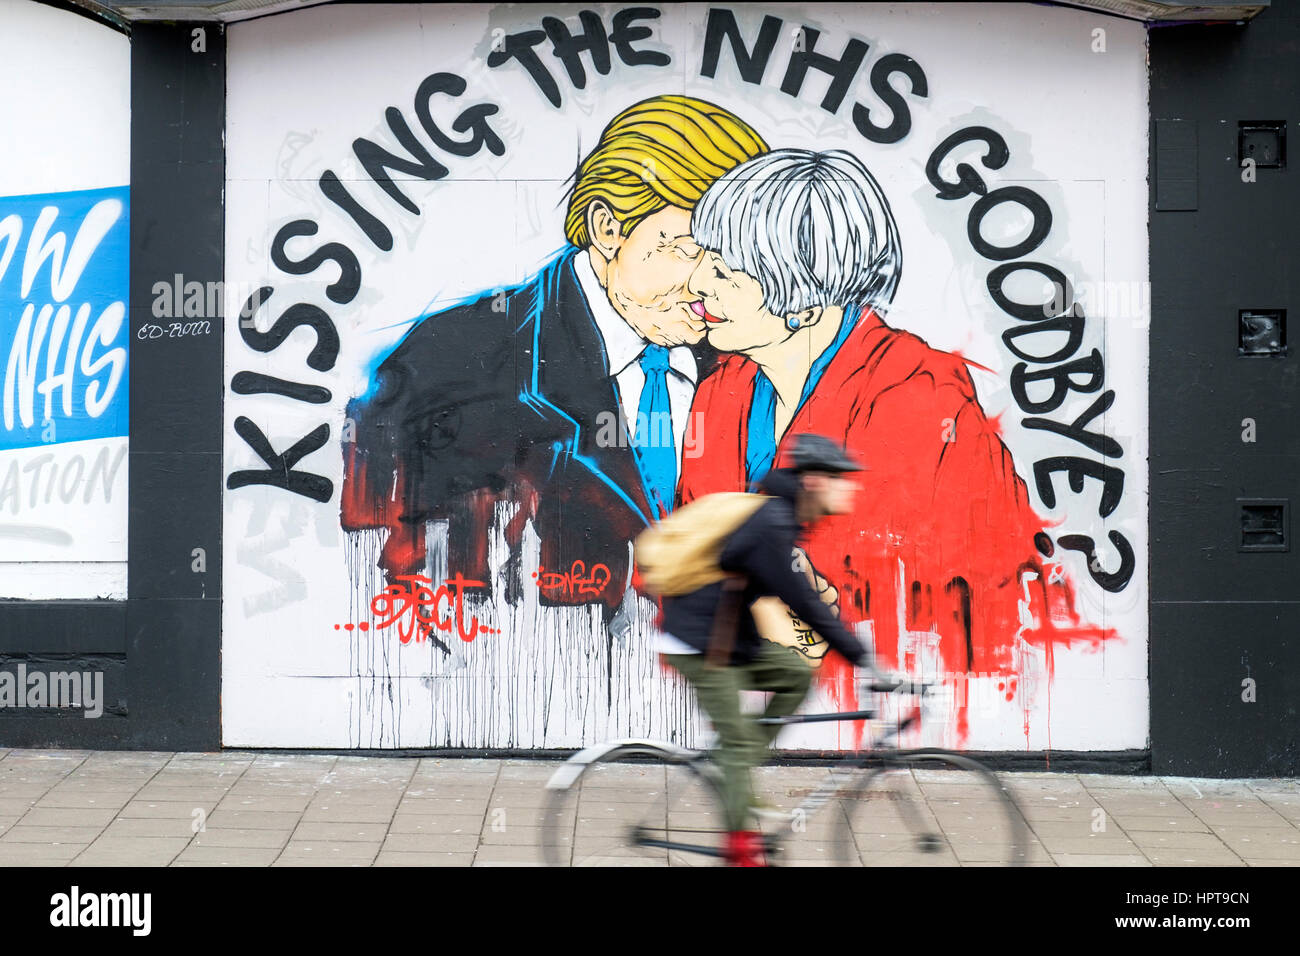 Bristol, UK. 24th Feb, 2017. A man is pictured cycling past a new piece of street art warning about the death of - Stock Image